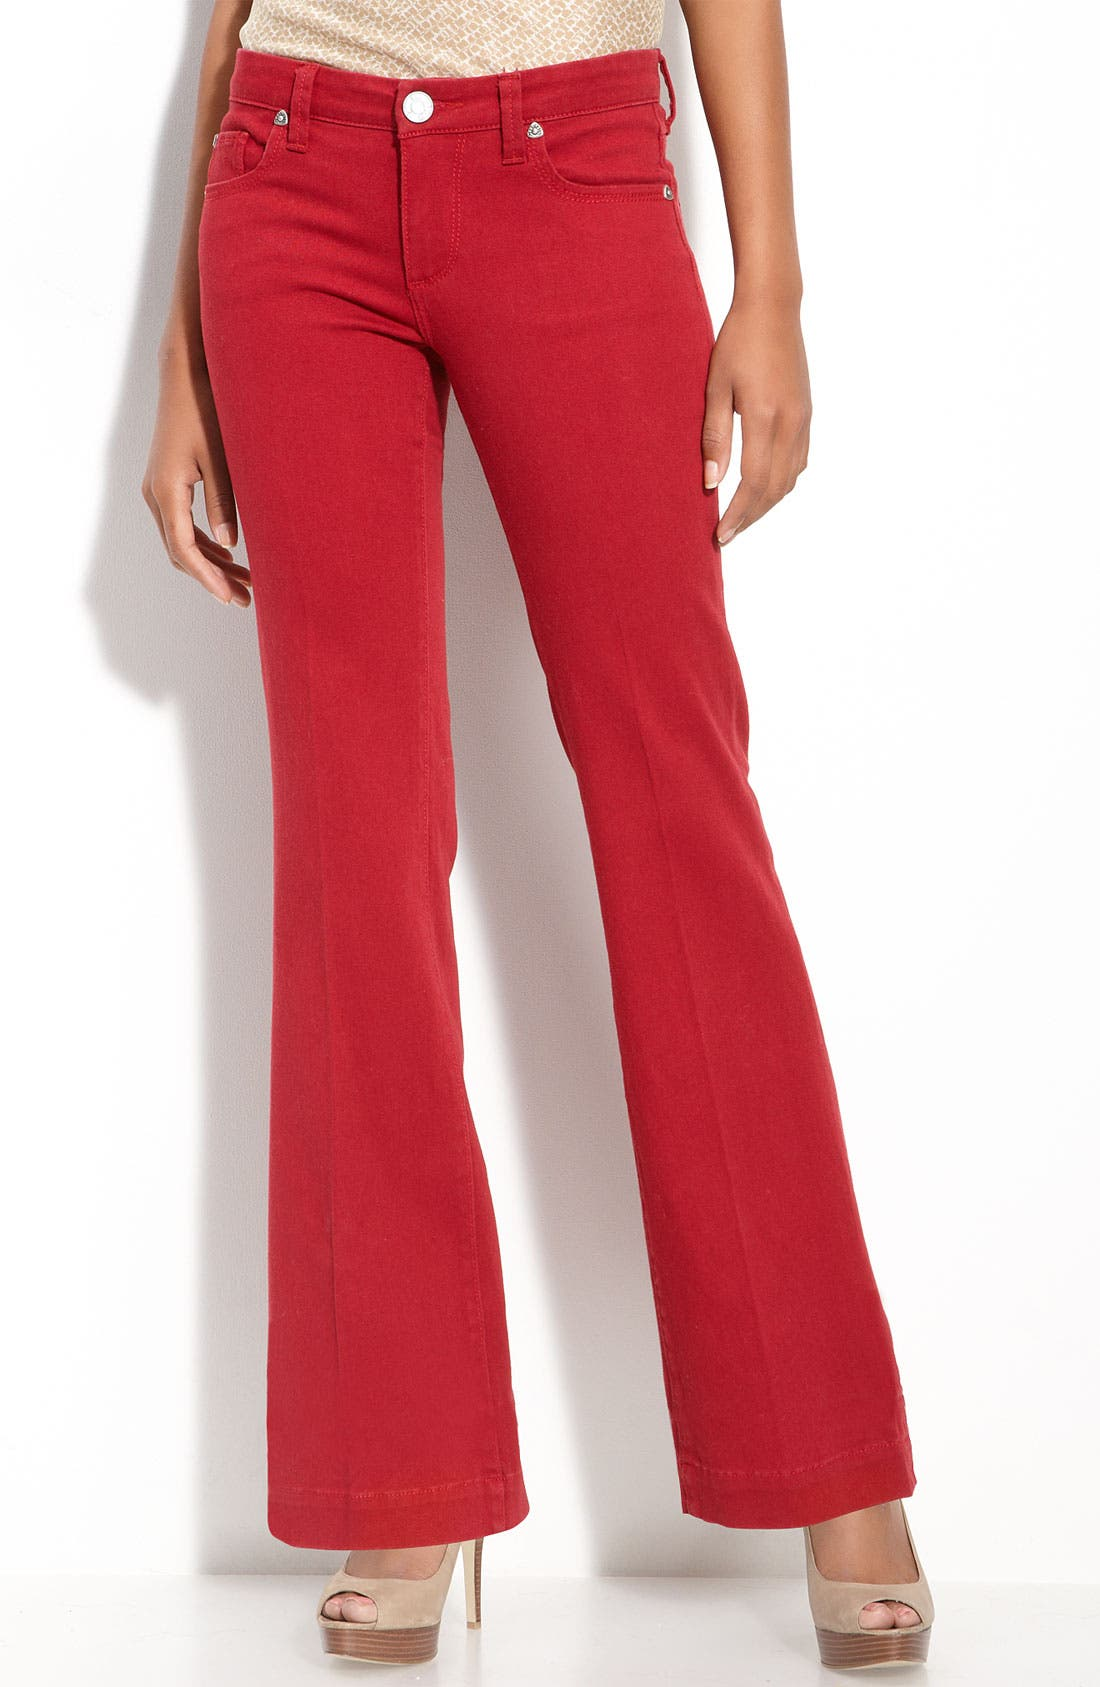 Alternate Image 2  - KUT from the Kloth Colored Denim Flare Leg Jeans